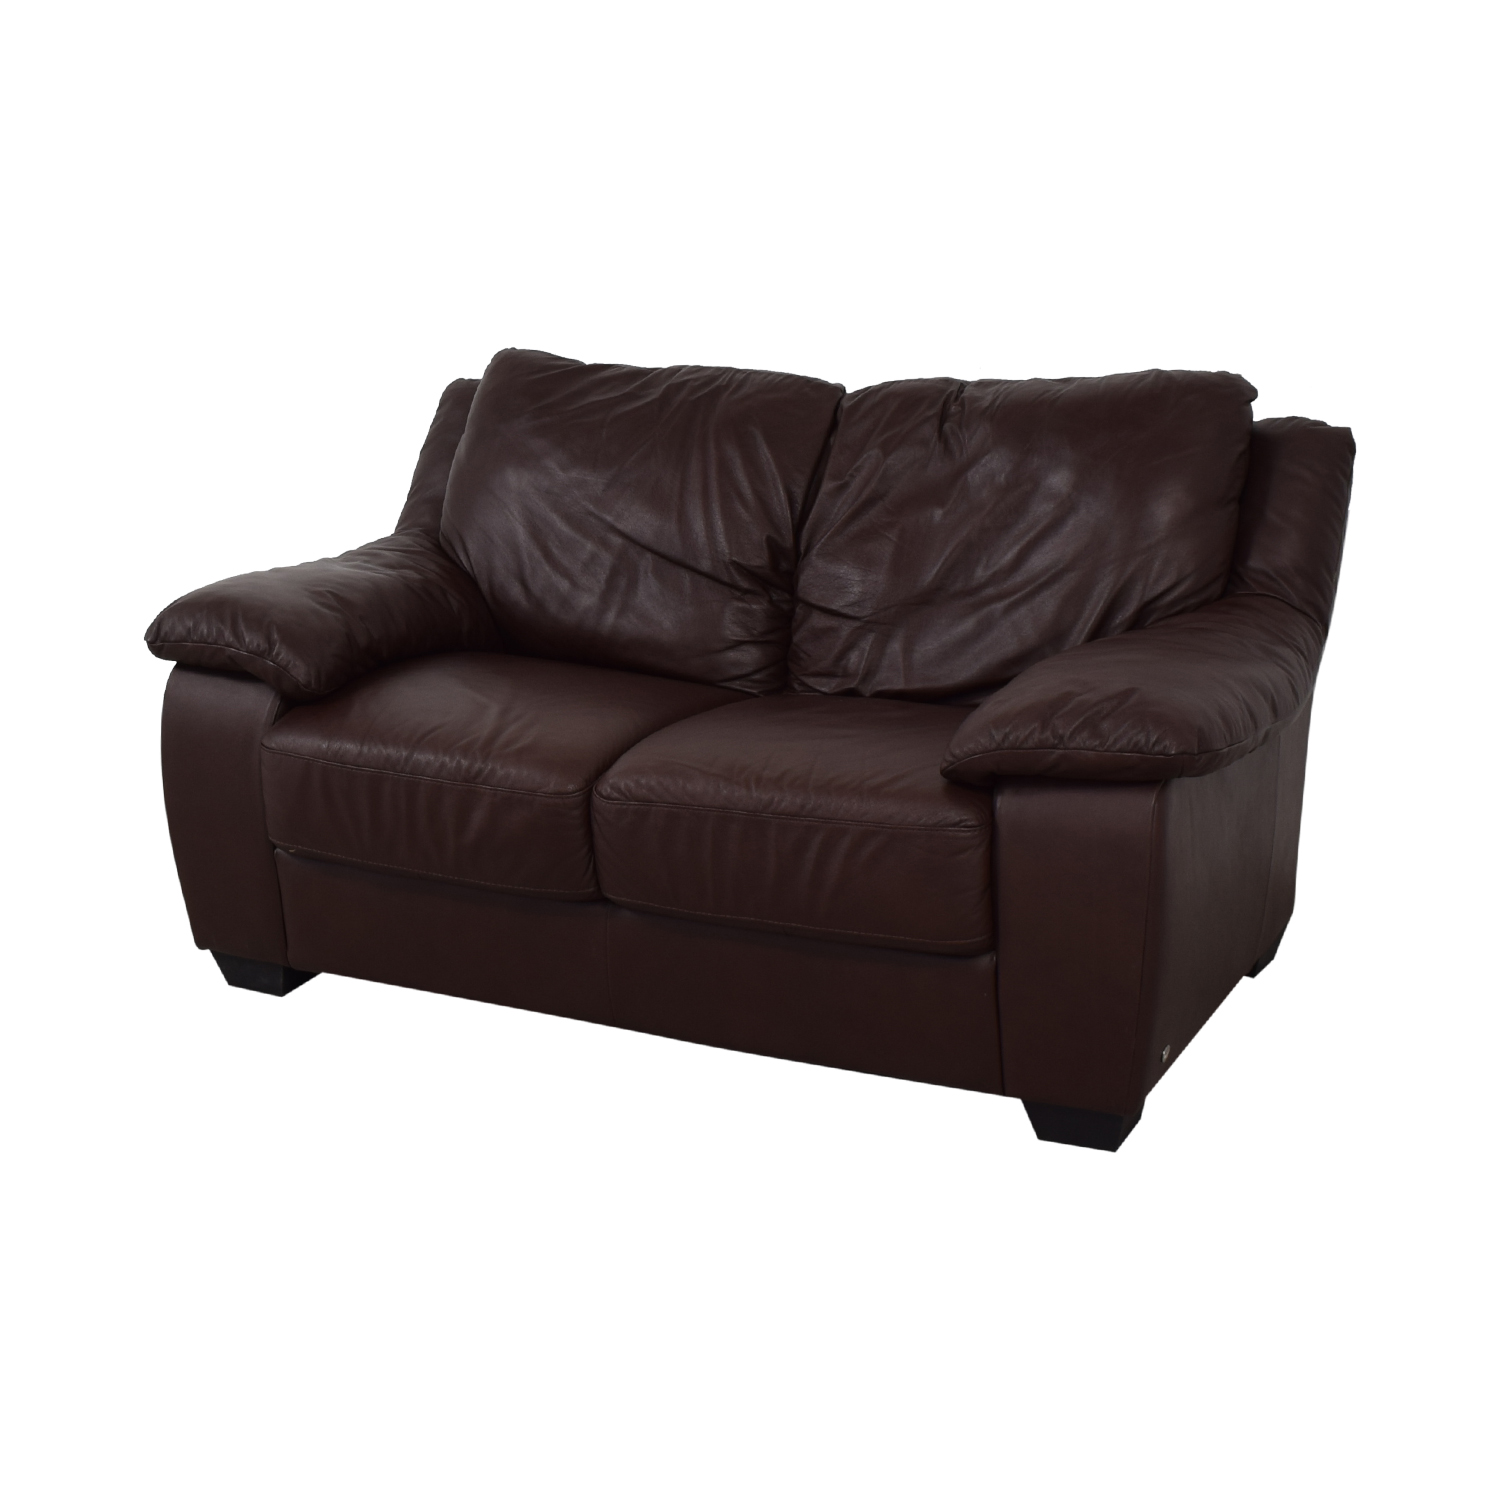 Natuzzi Natuzzi Brown Two-Cushion Loveseat dimensions